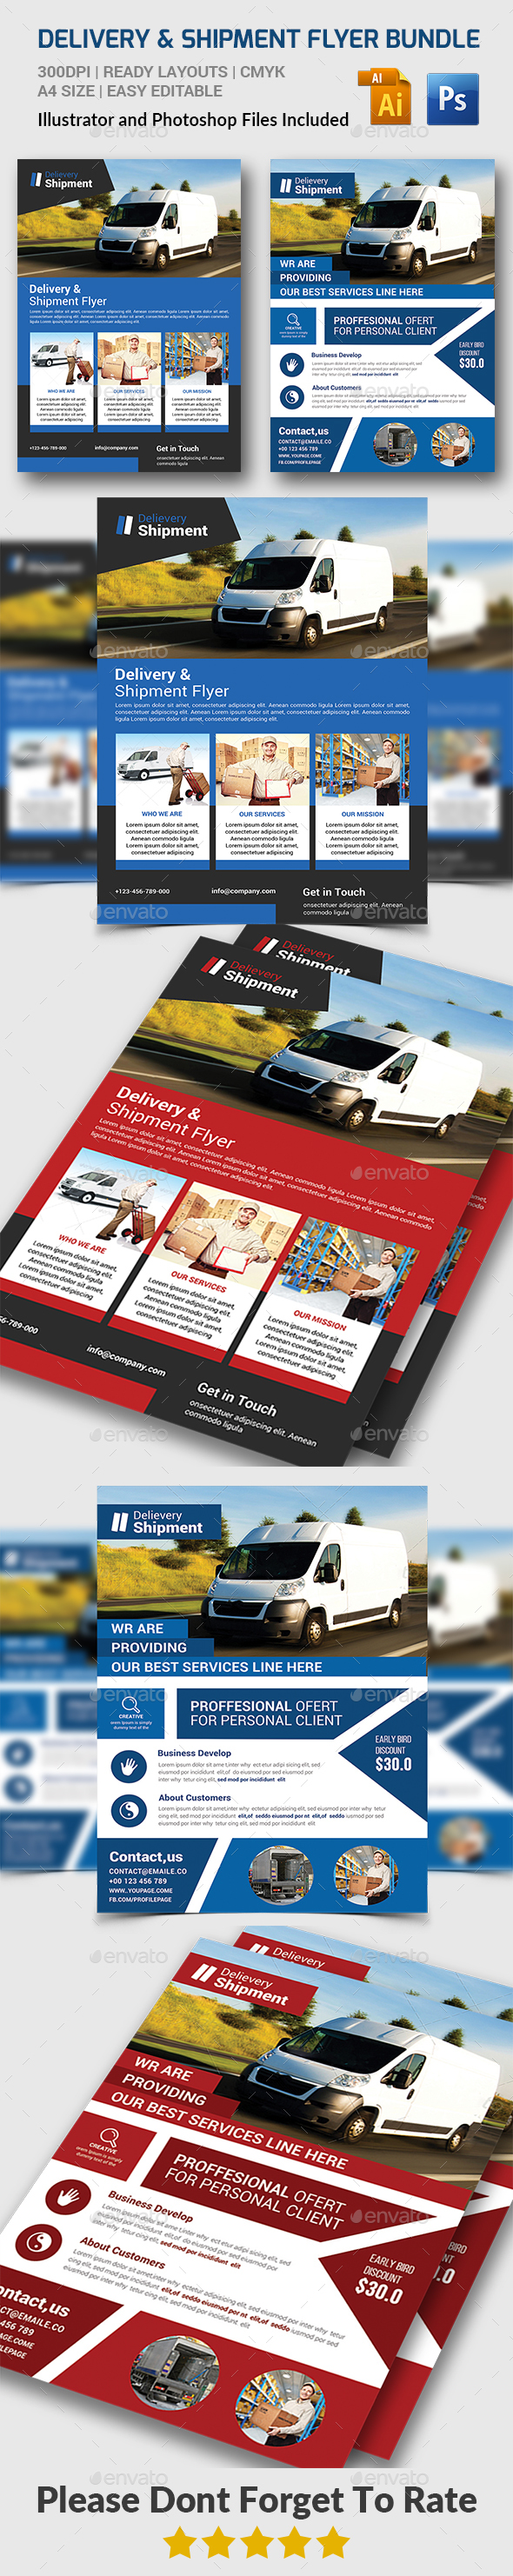 Delivery & Shipment Flyers Bundle - Corporate Flyers